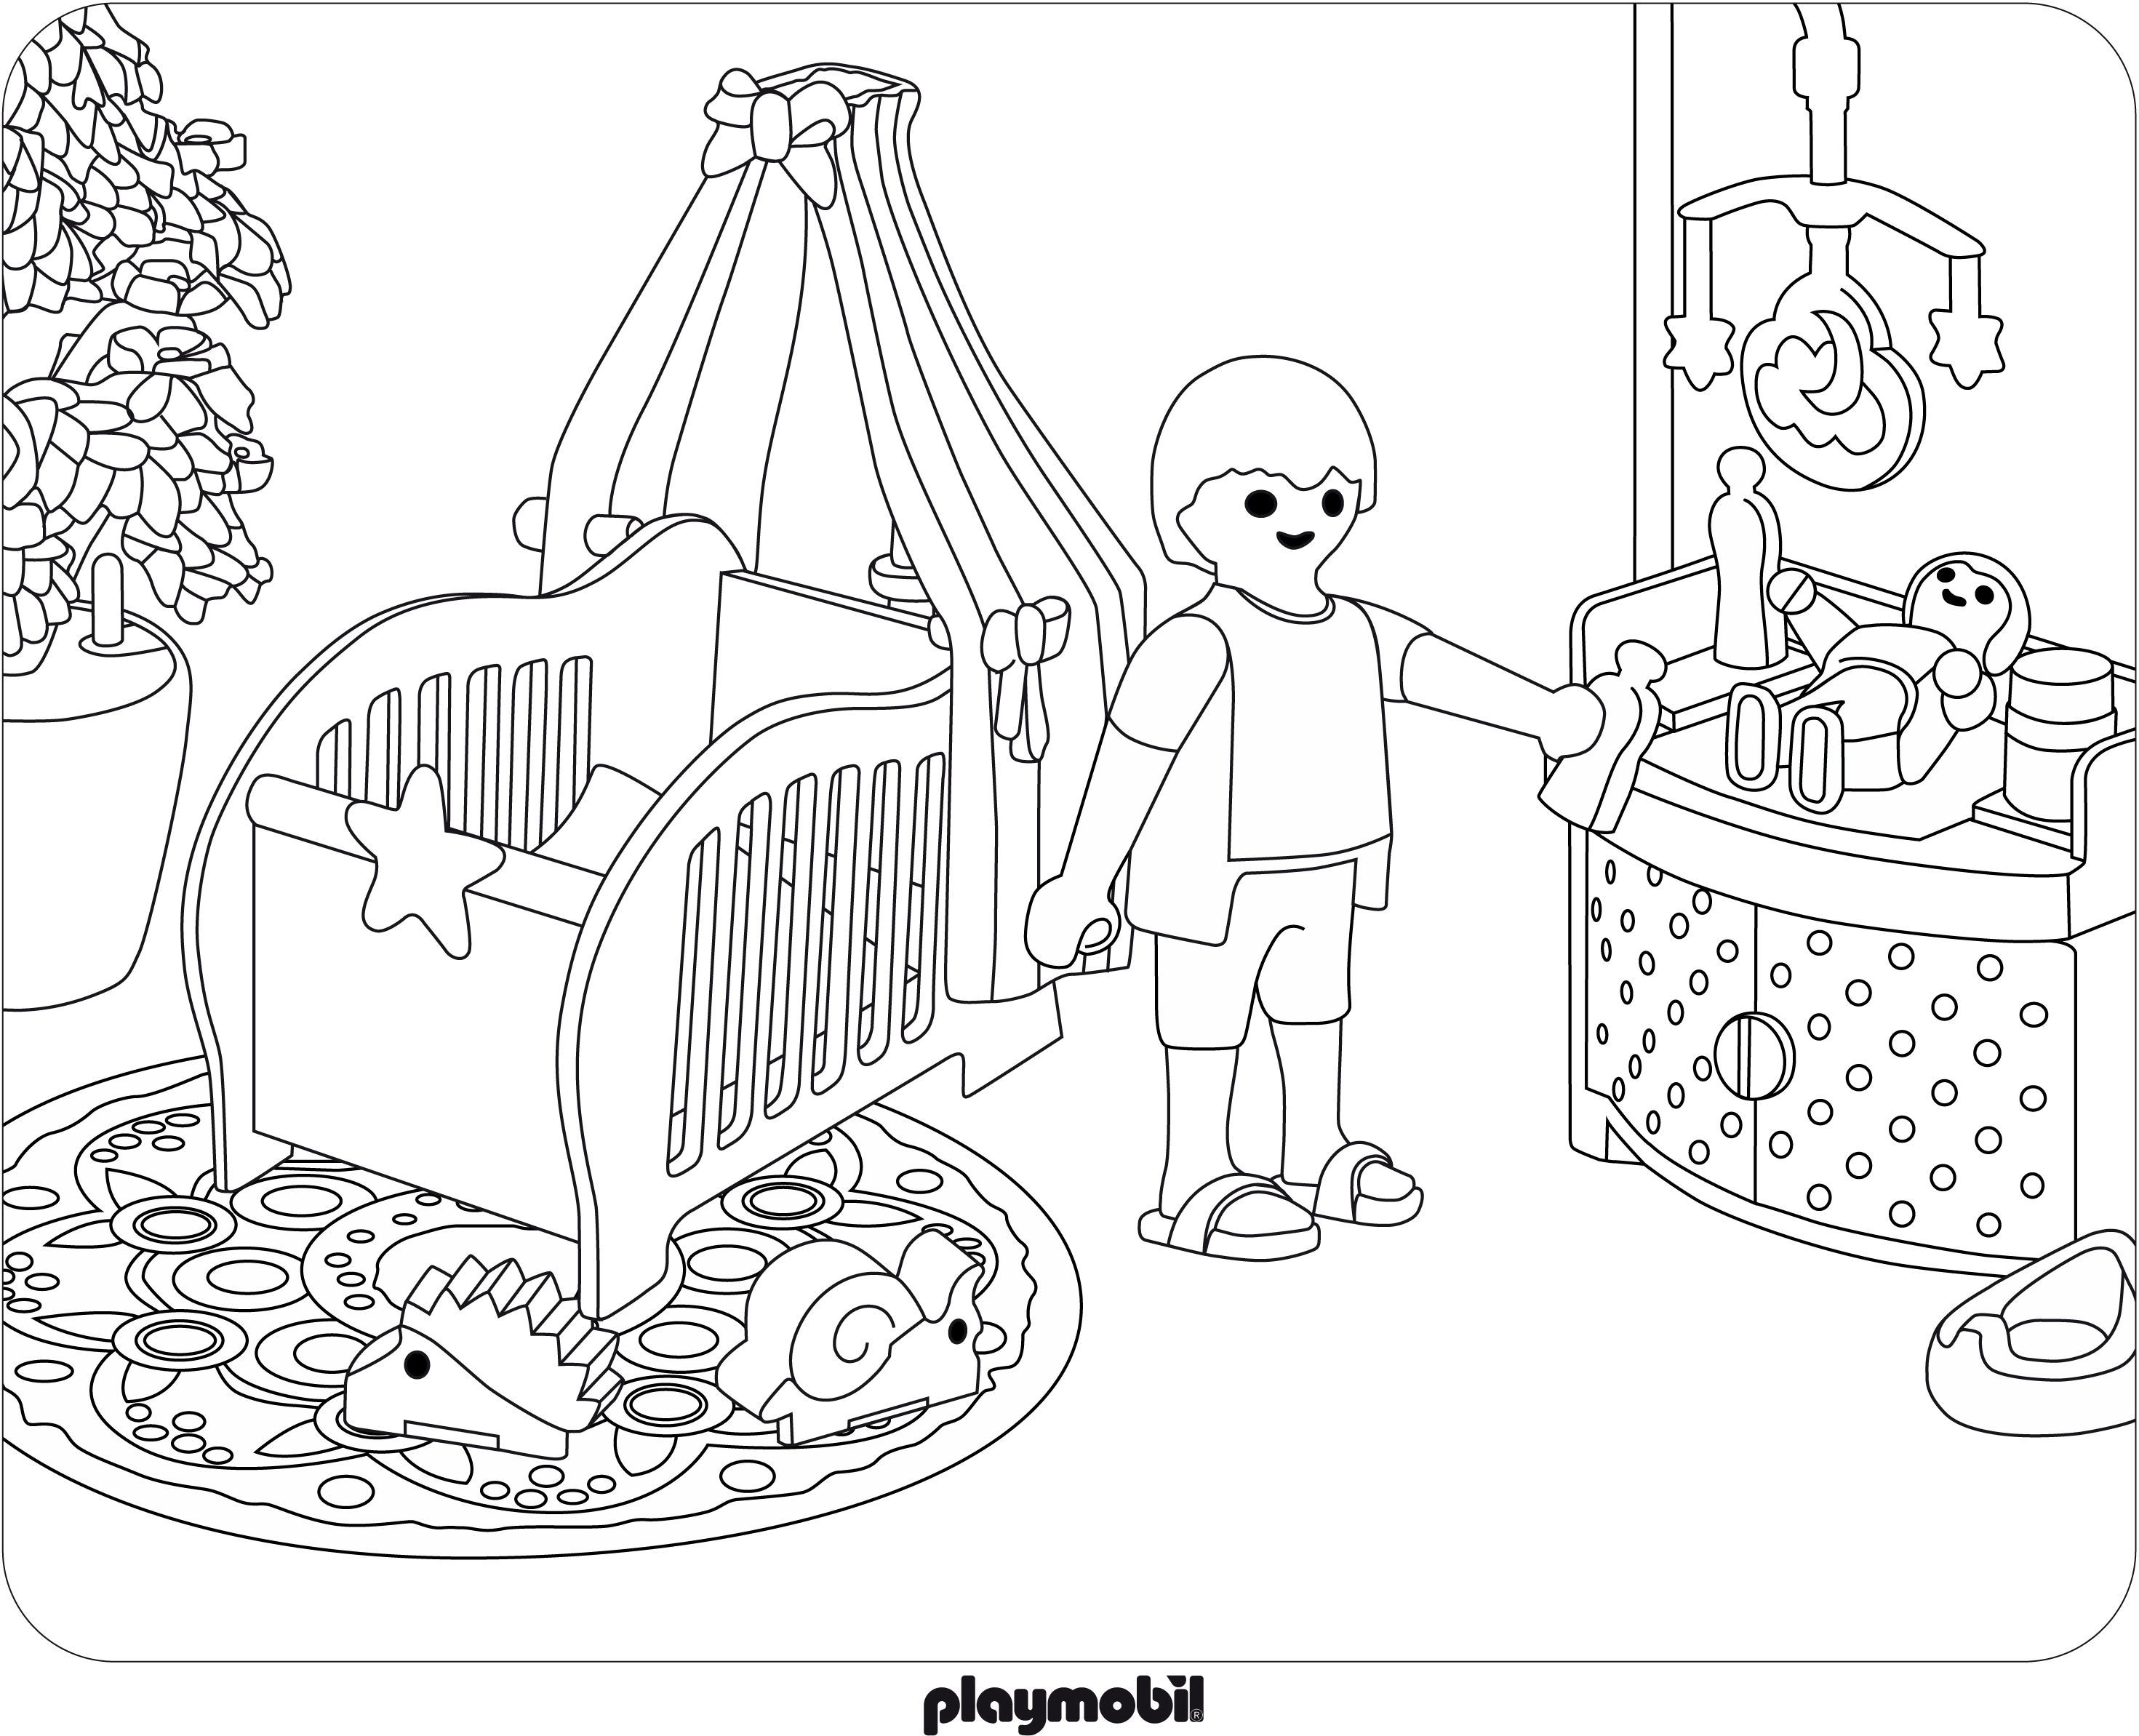 Coloriage Playmobil Agent Secret Coloriage Famille Coloriage Dessin A Colorier